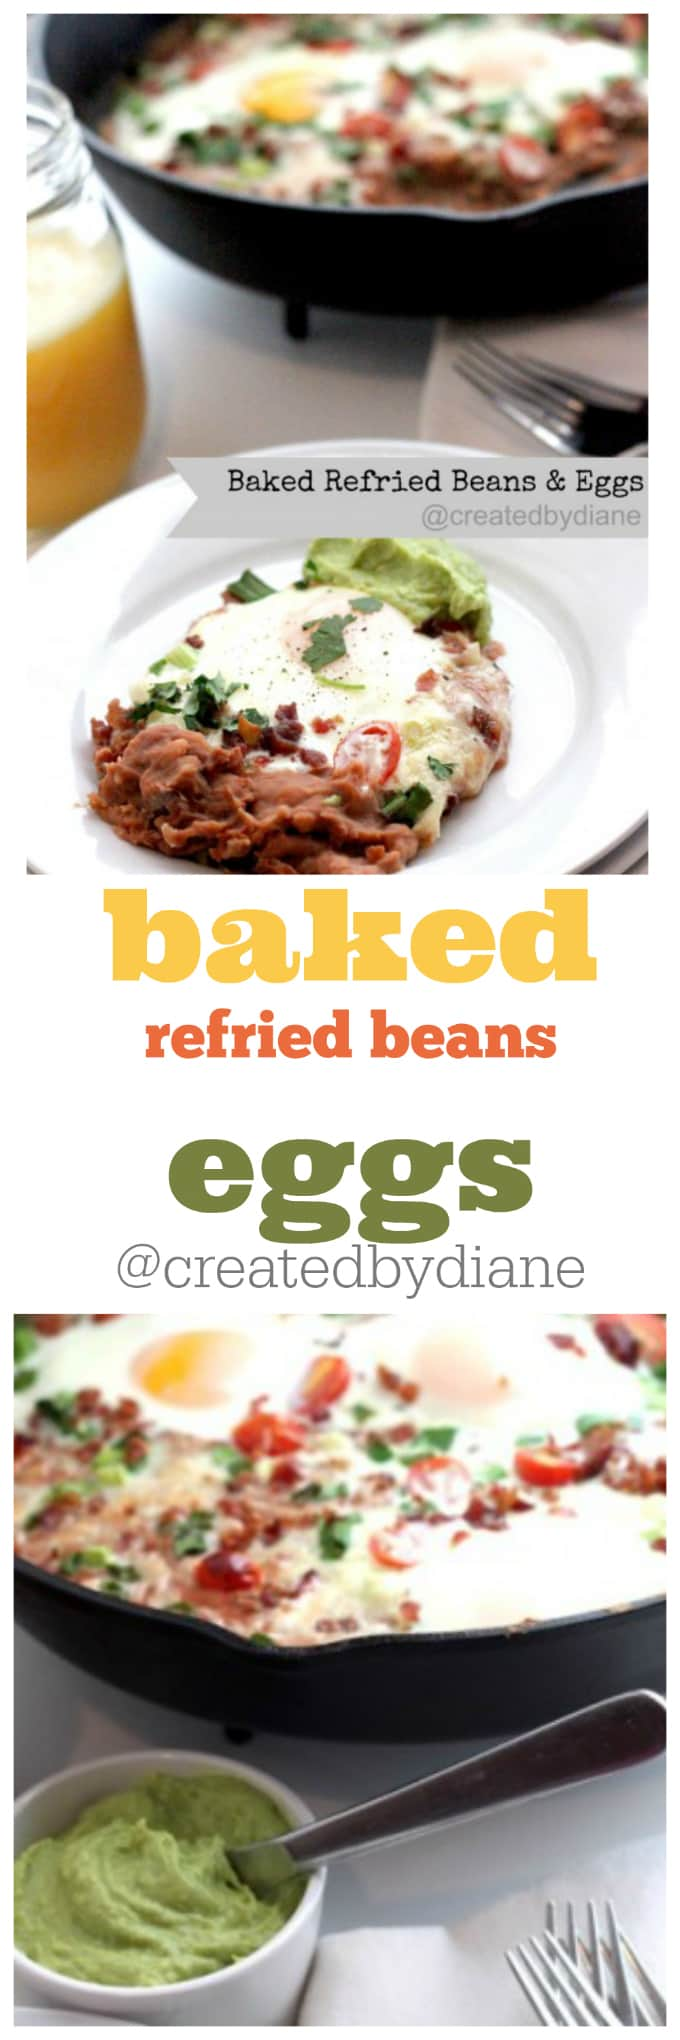 baked refried beans and eggs @createdbydiane